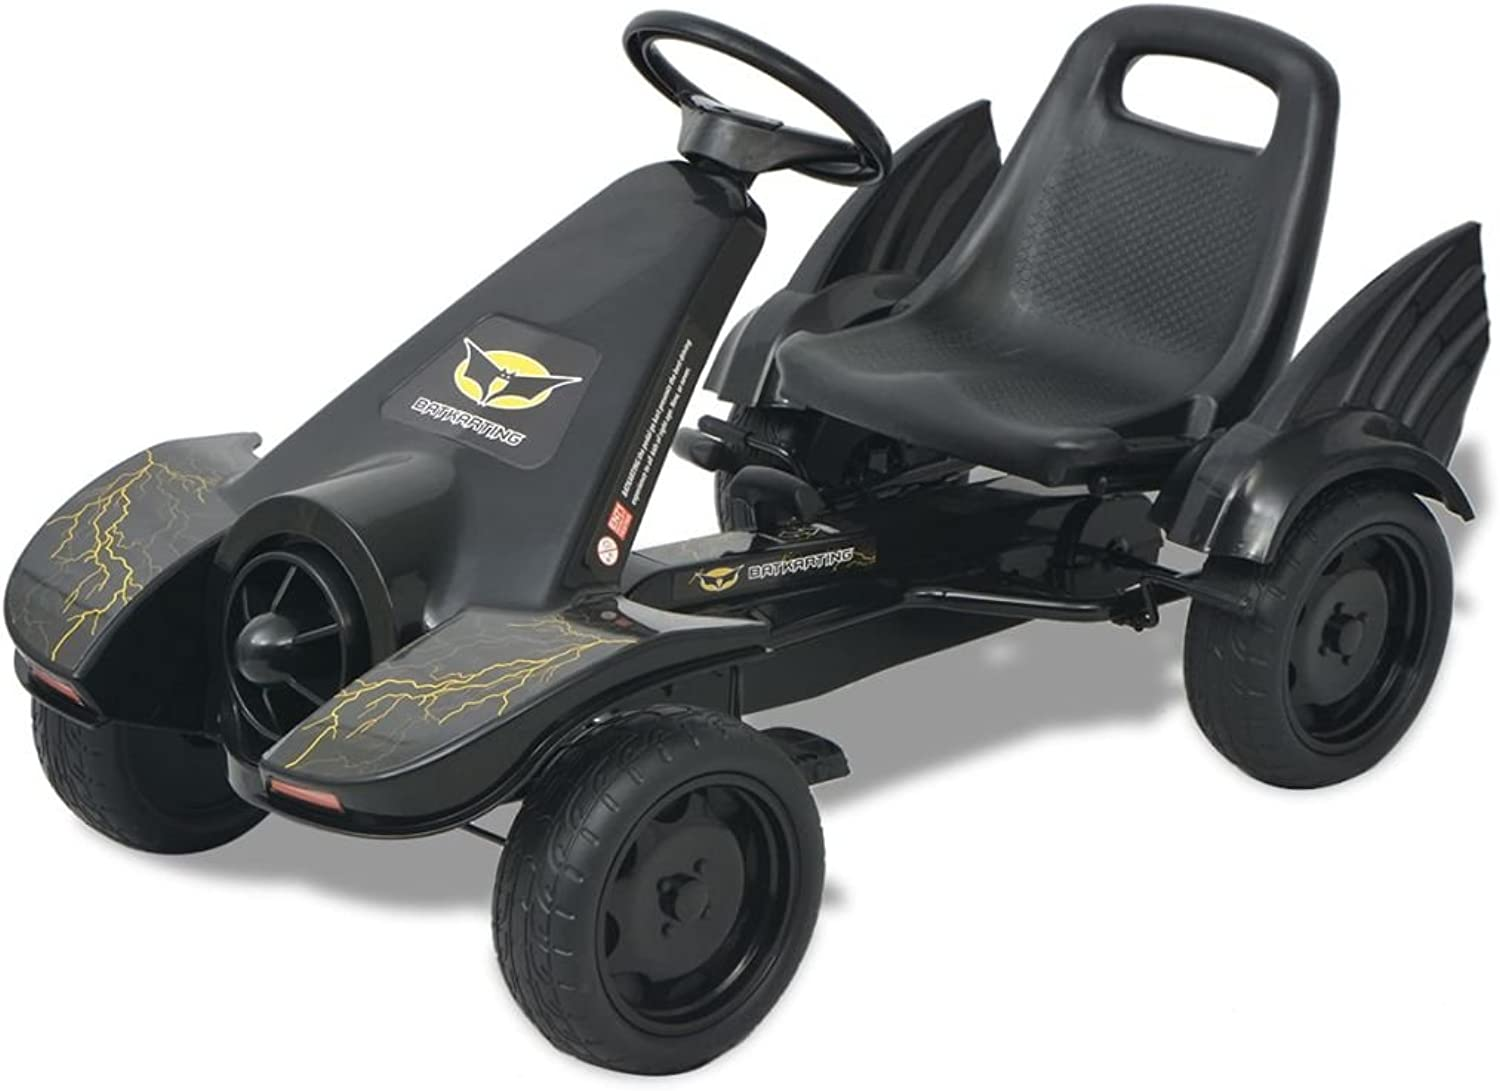 SENLUOWX Pedal Go Kart with Adjustable Seat Black